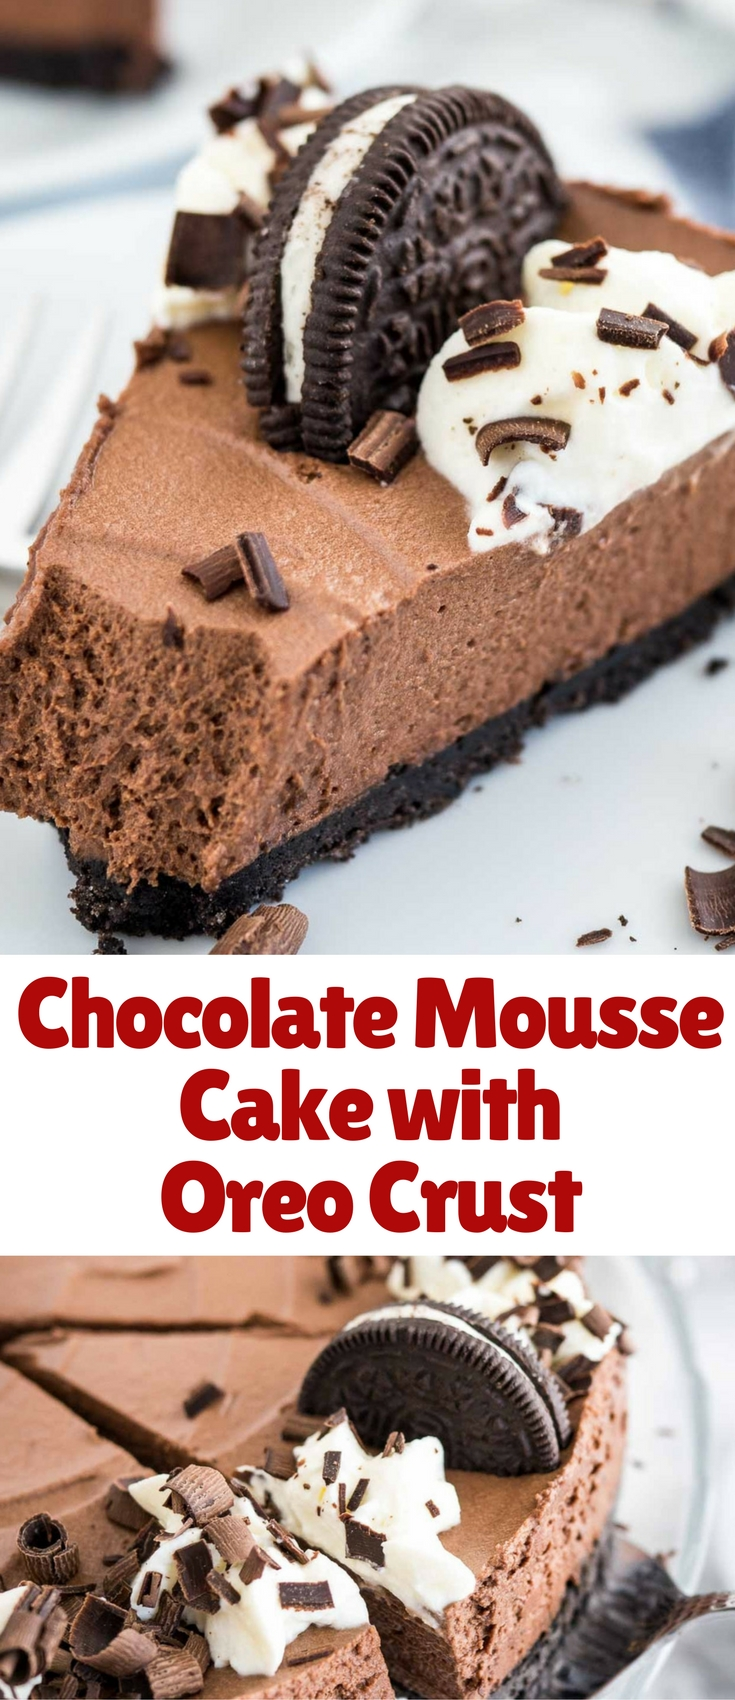 Chocolate Mousse Cake is every chocolate lovers dream! This decadent no-bake dessert is perfect for special occasions but so easy to make from scratch. Read the tips above before making this recipe!